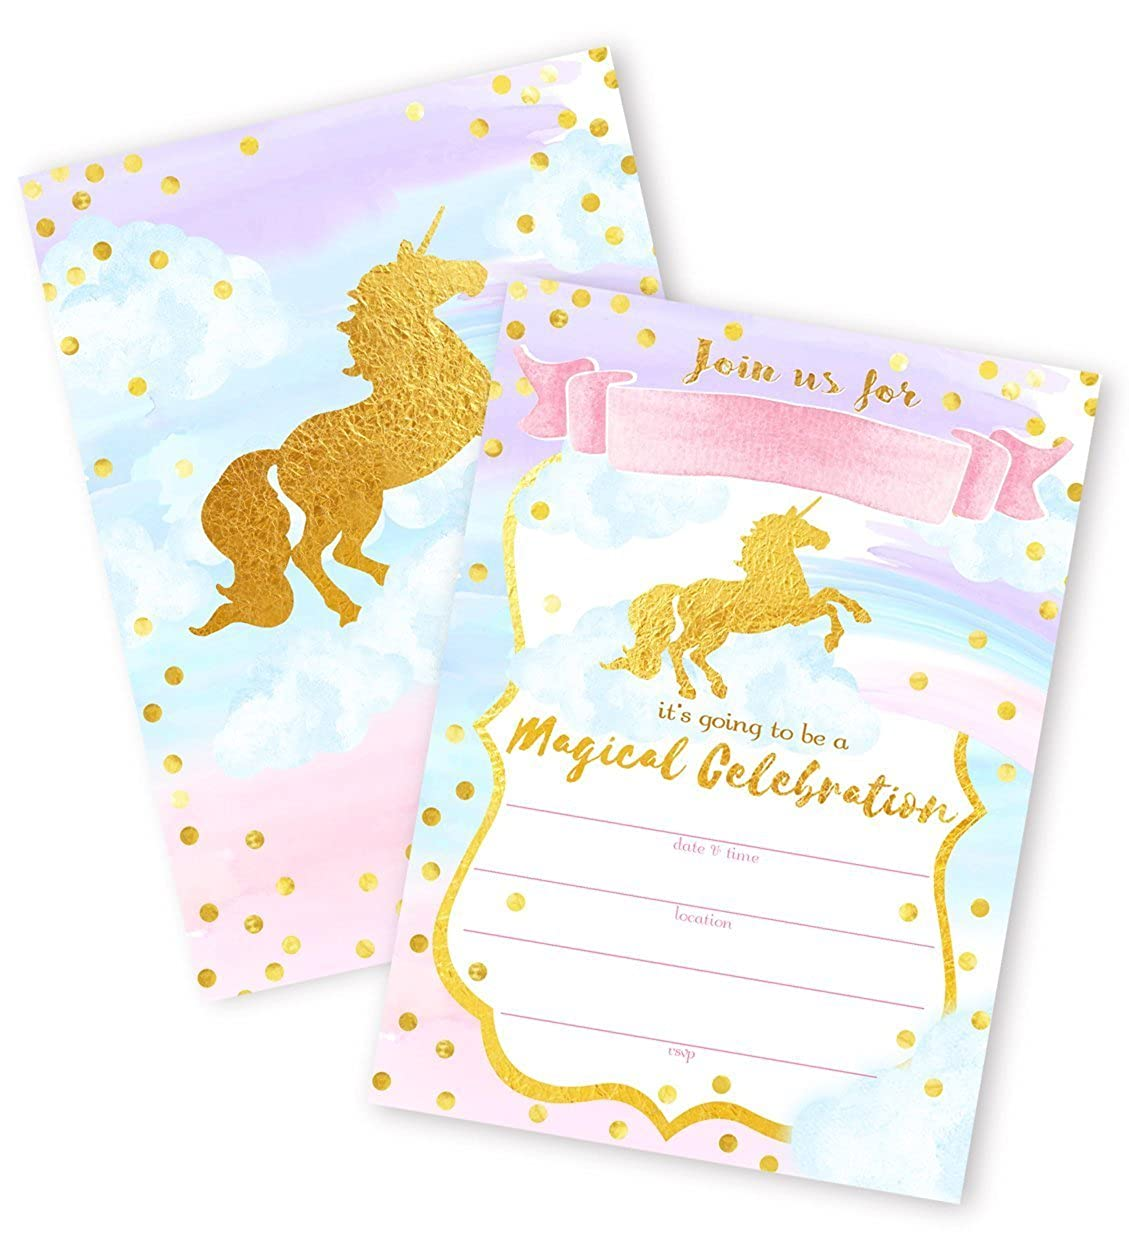 Magical Unicorn 12 LARGE Invitations - 12 Invitations + 12 Envelopes - DOUBLE SIDED POP parties